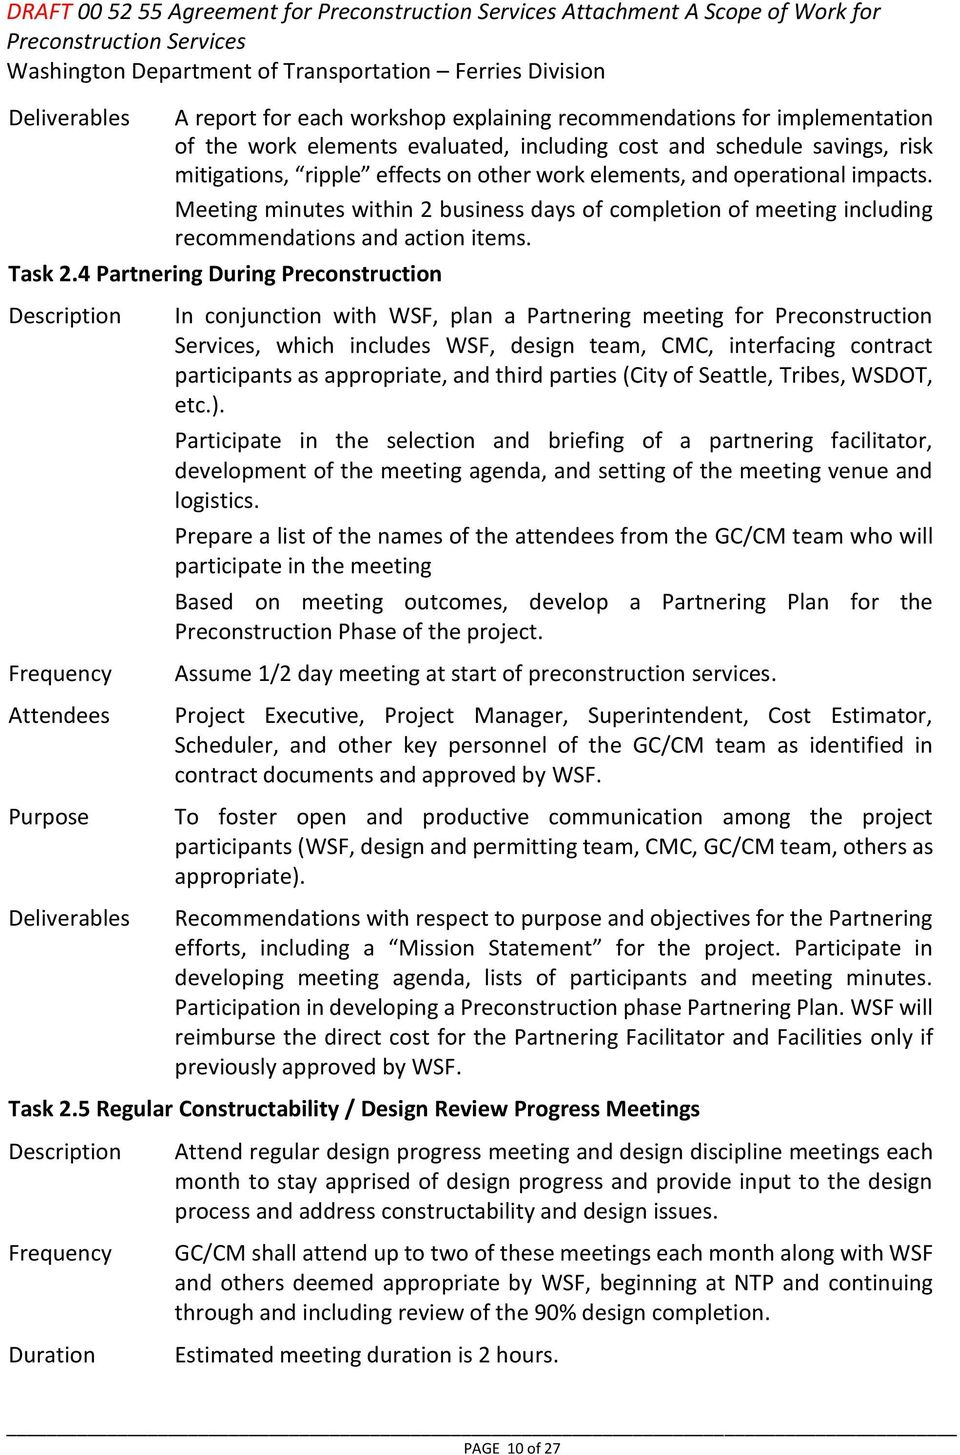 Attachment A Scope Of Work For Preconstruction Services Pdf